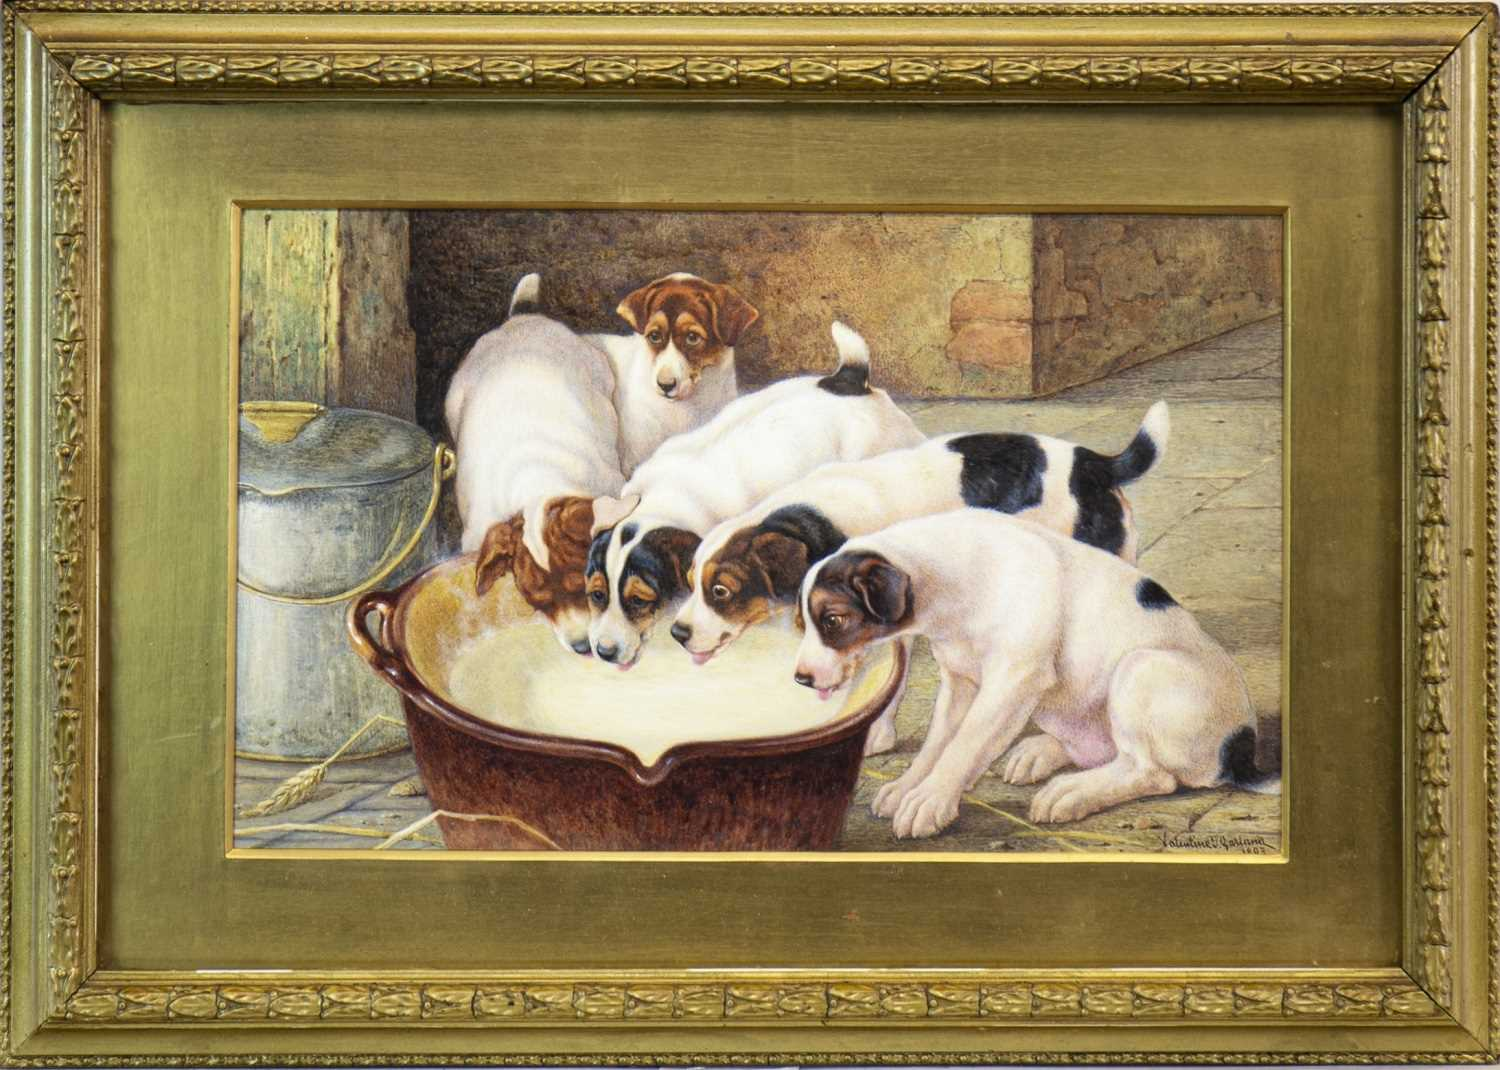 Lot 466-DRINK, PUPPY, DRINK, A WATERCOLOUR BY VALENTINE GARLAND